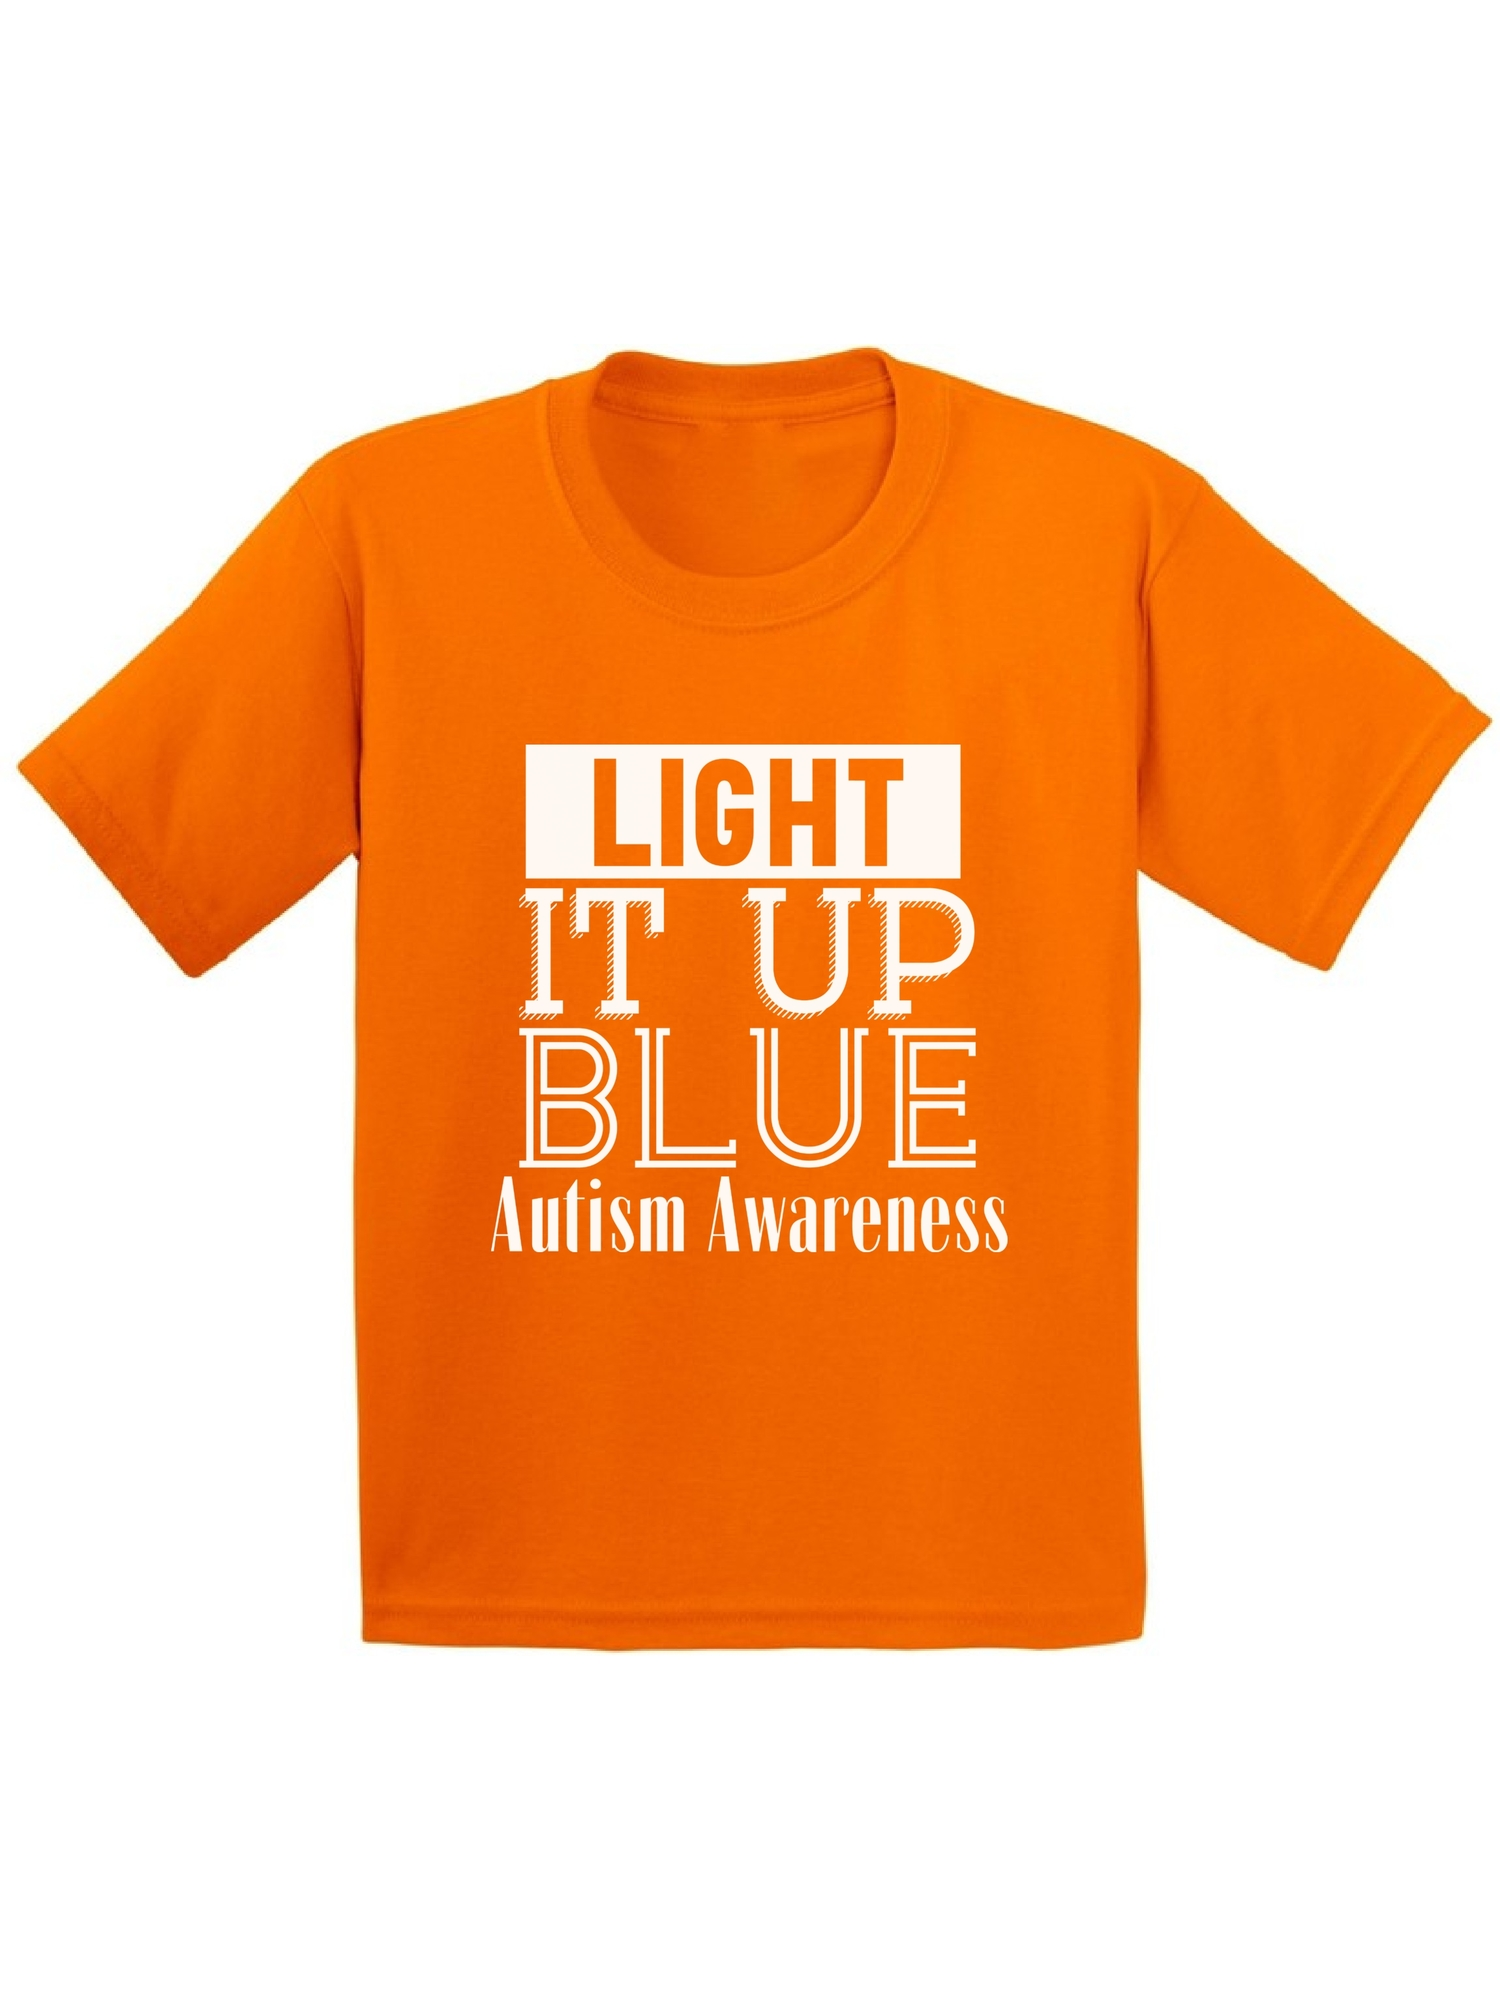 Awkward Styles Youth Light It Up Blue for Autism Awareness Shine A Light White Graphic Youth Kids T-shirt Tops